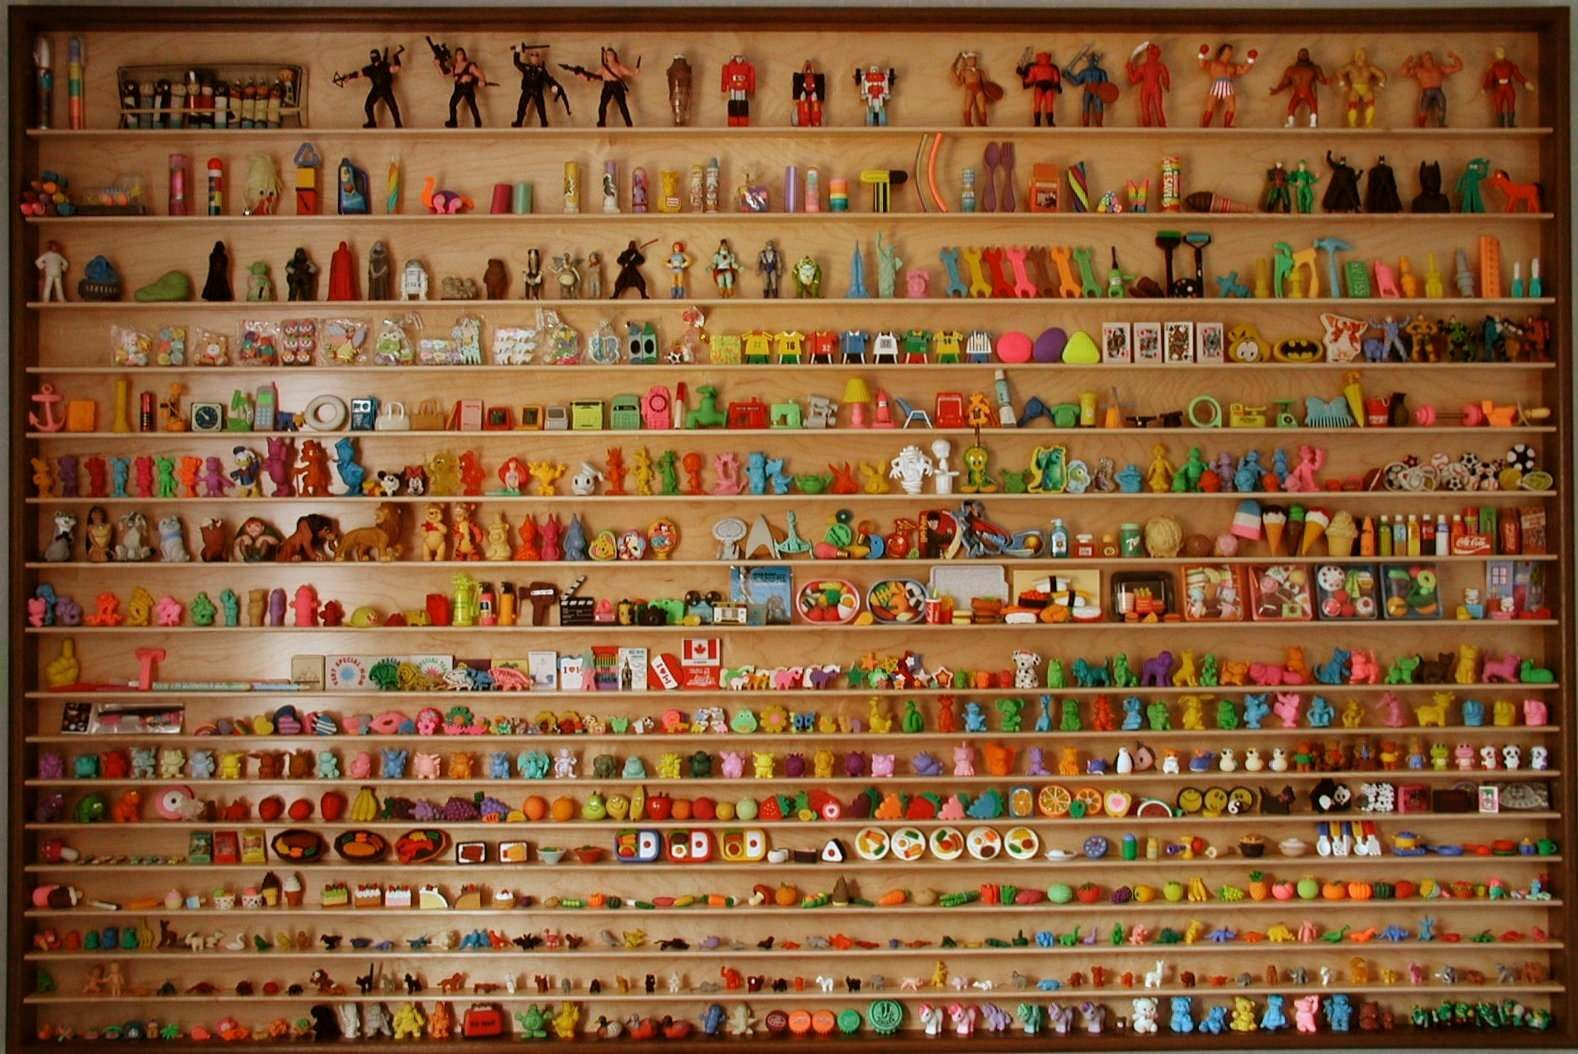 My Eraser Collection Eraser Collection Displaying Collections Eraser